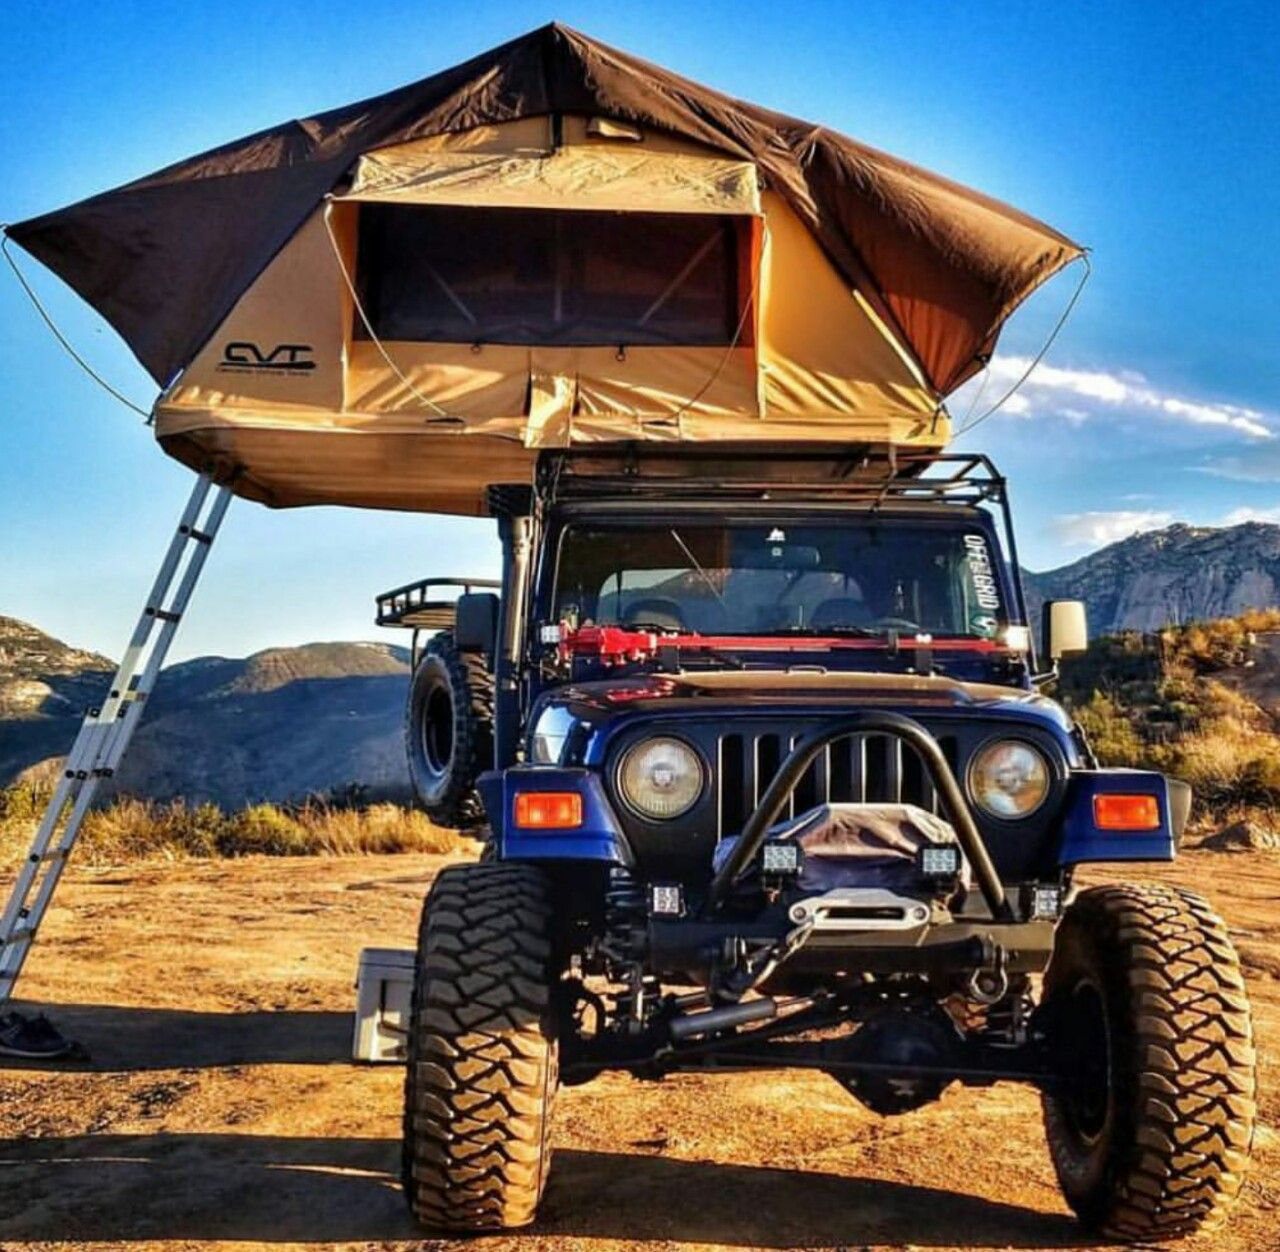 The Jeep We Purchased: The Purchase Of My Jeep Changed My Life. This Blog Is All